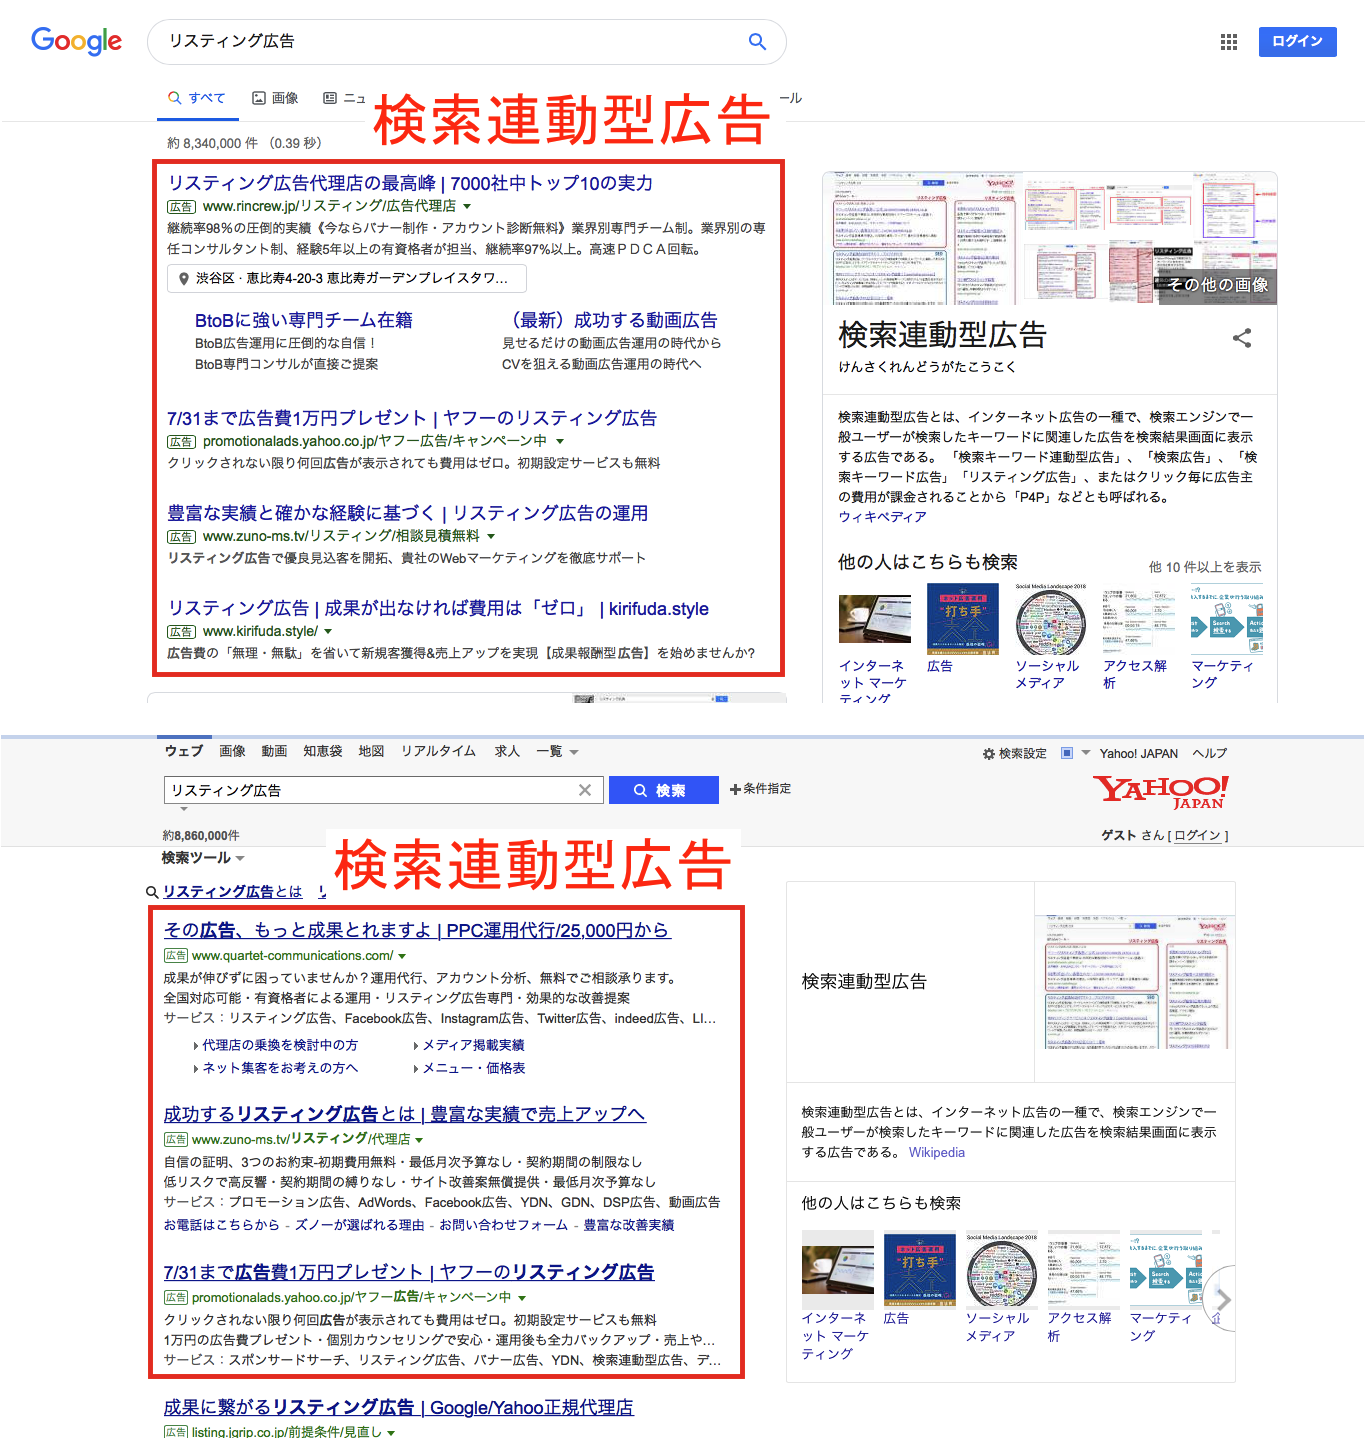 google-yahoo-search-adcontent-1